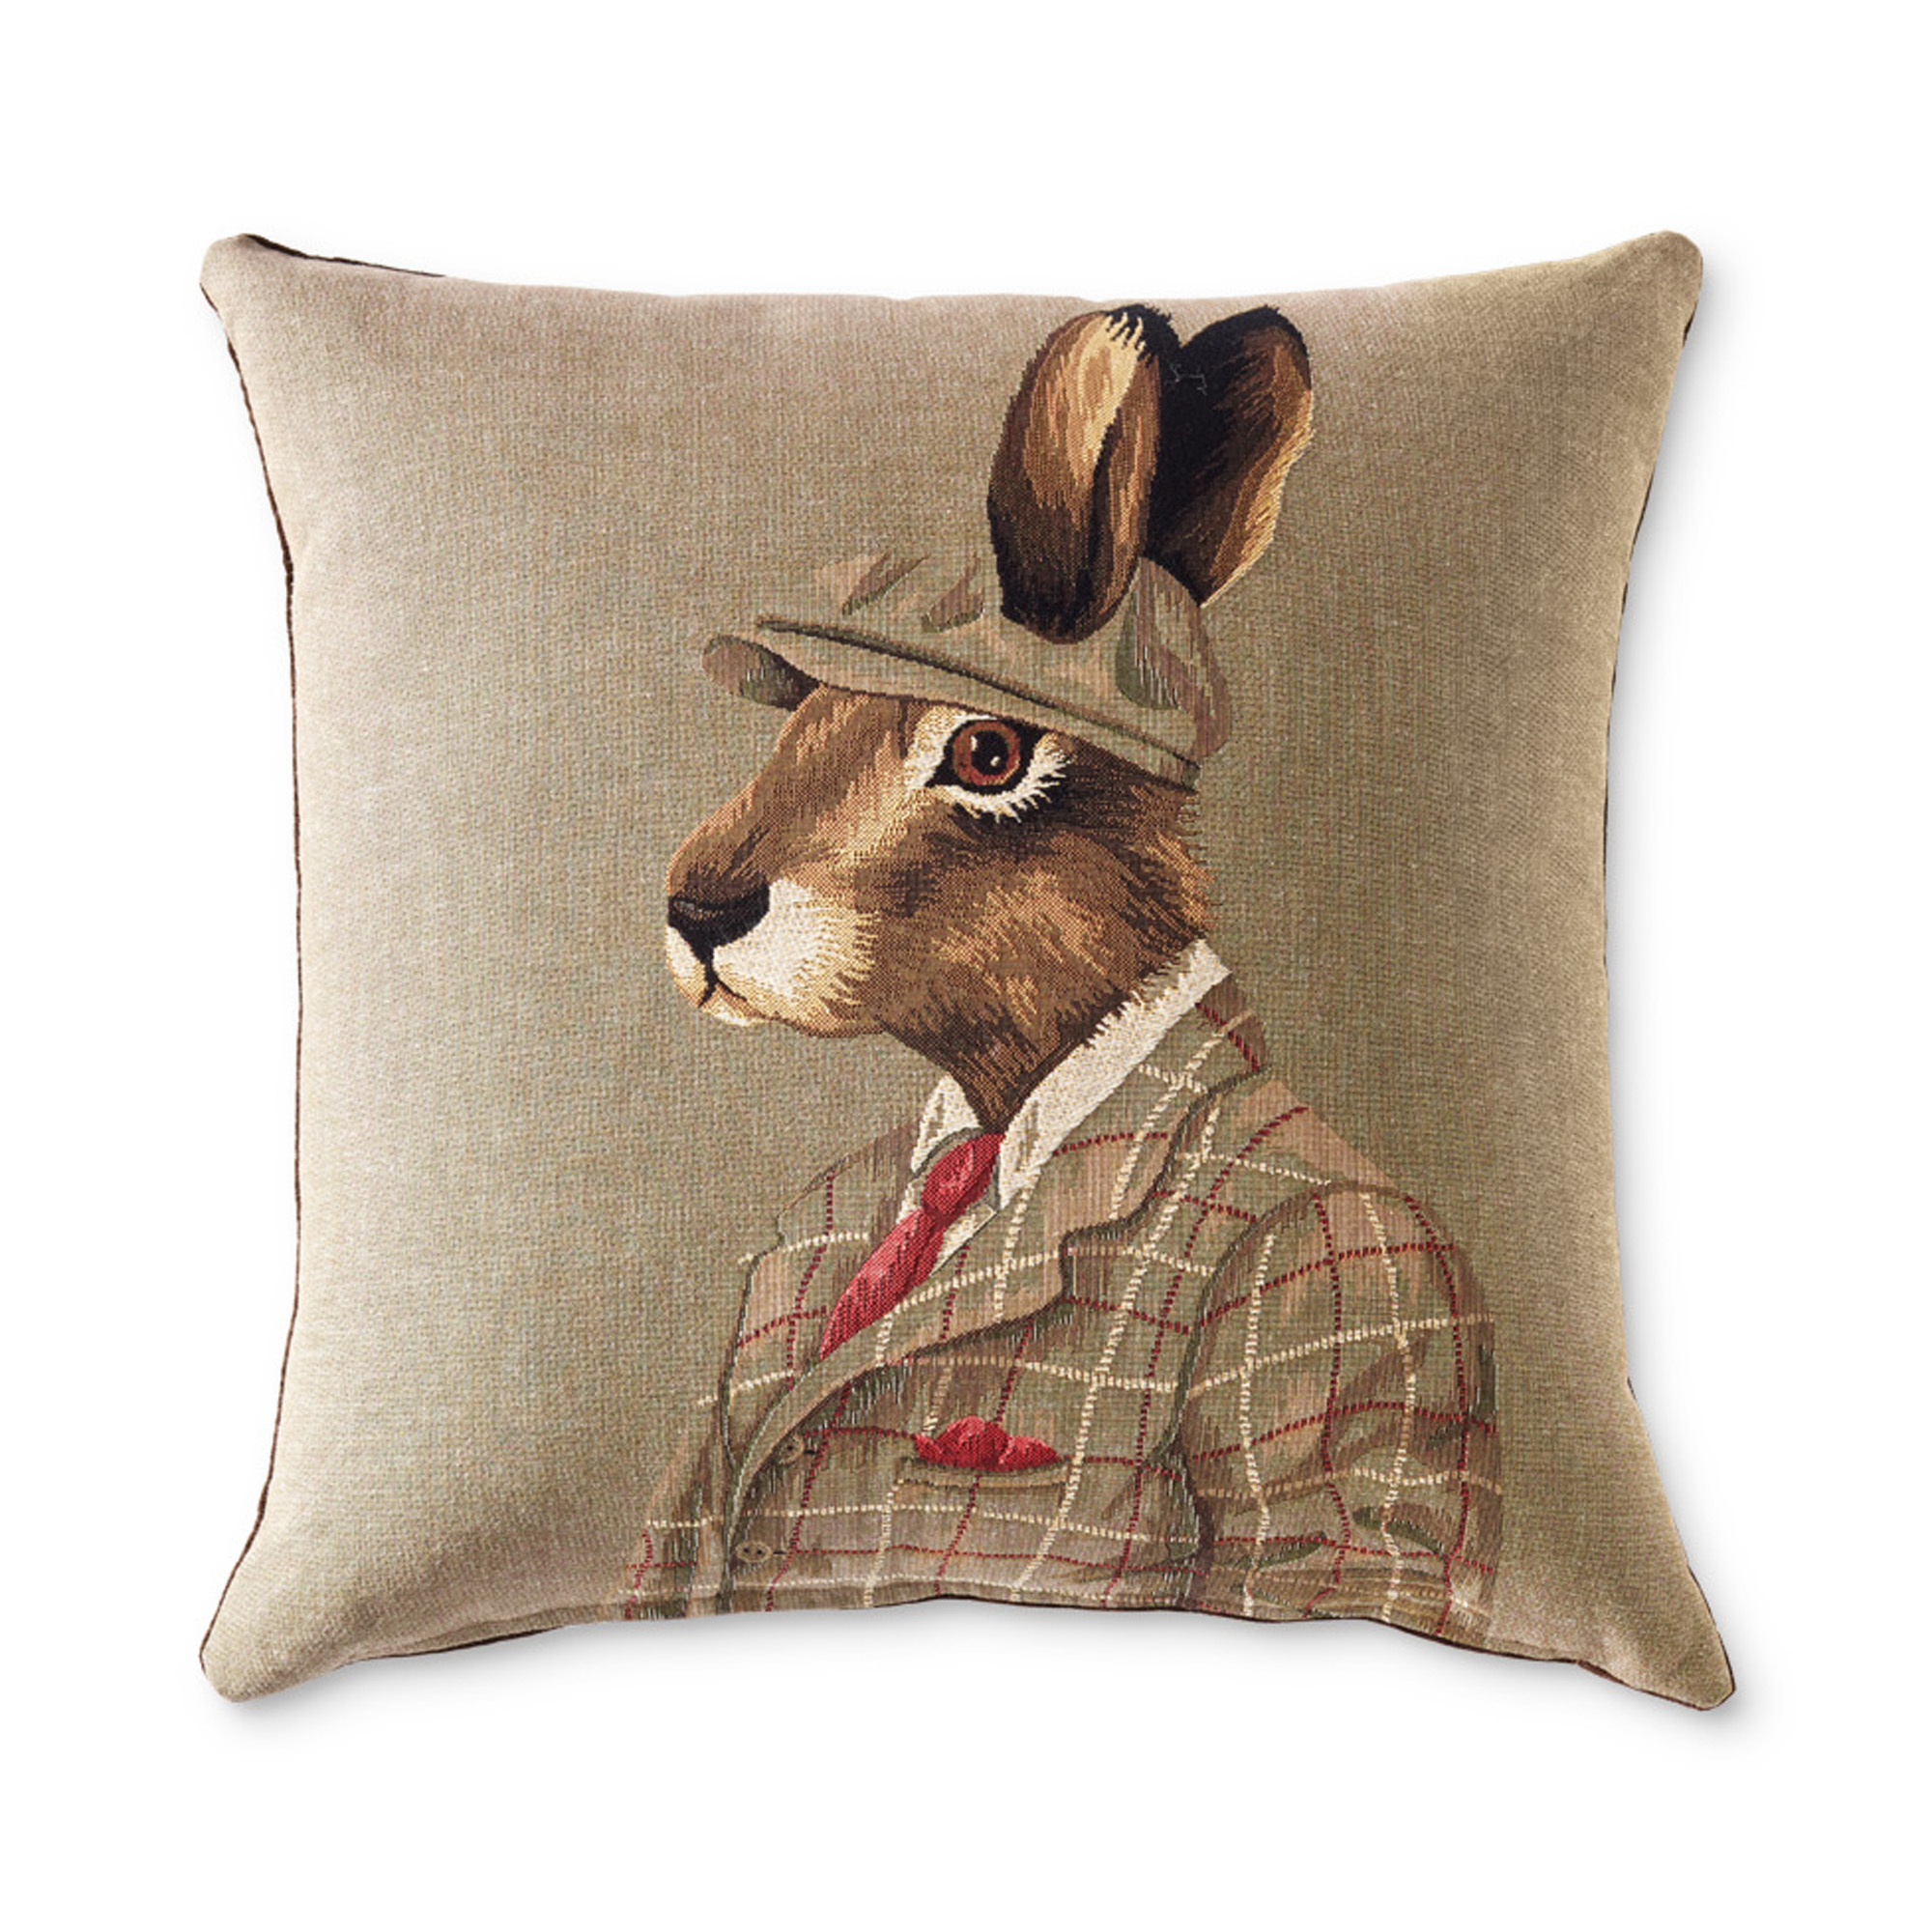 Country Hare Pillow